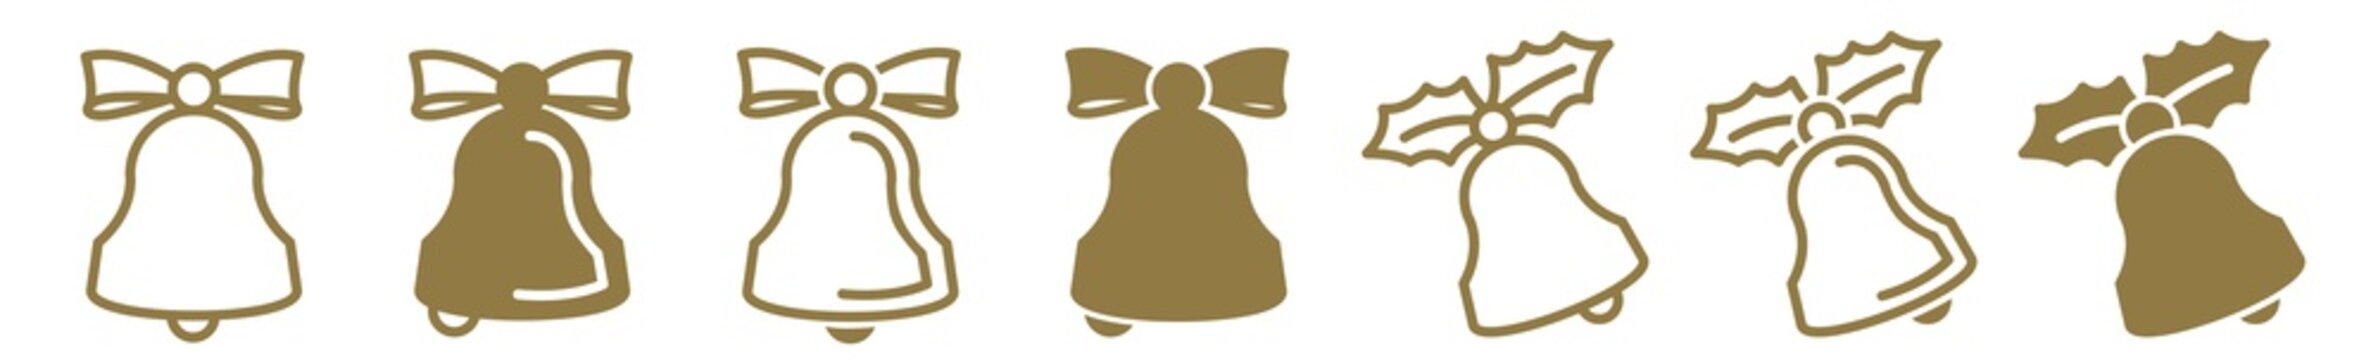 Christmas Bell Icon Gold | Bow Holly Bells Illustration | Jingle Symbol | Ribbon Handbell Logo | Xmas Sign | Isolated | Variations